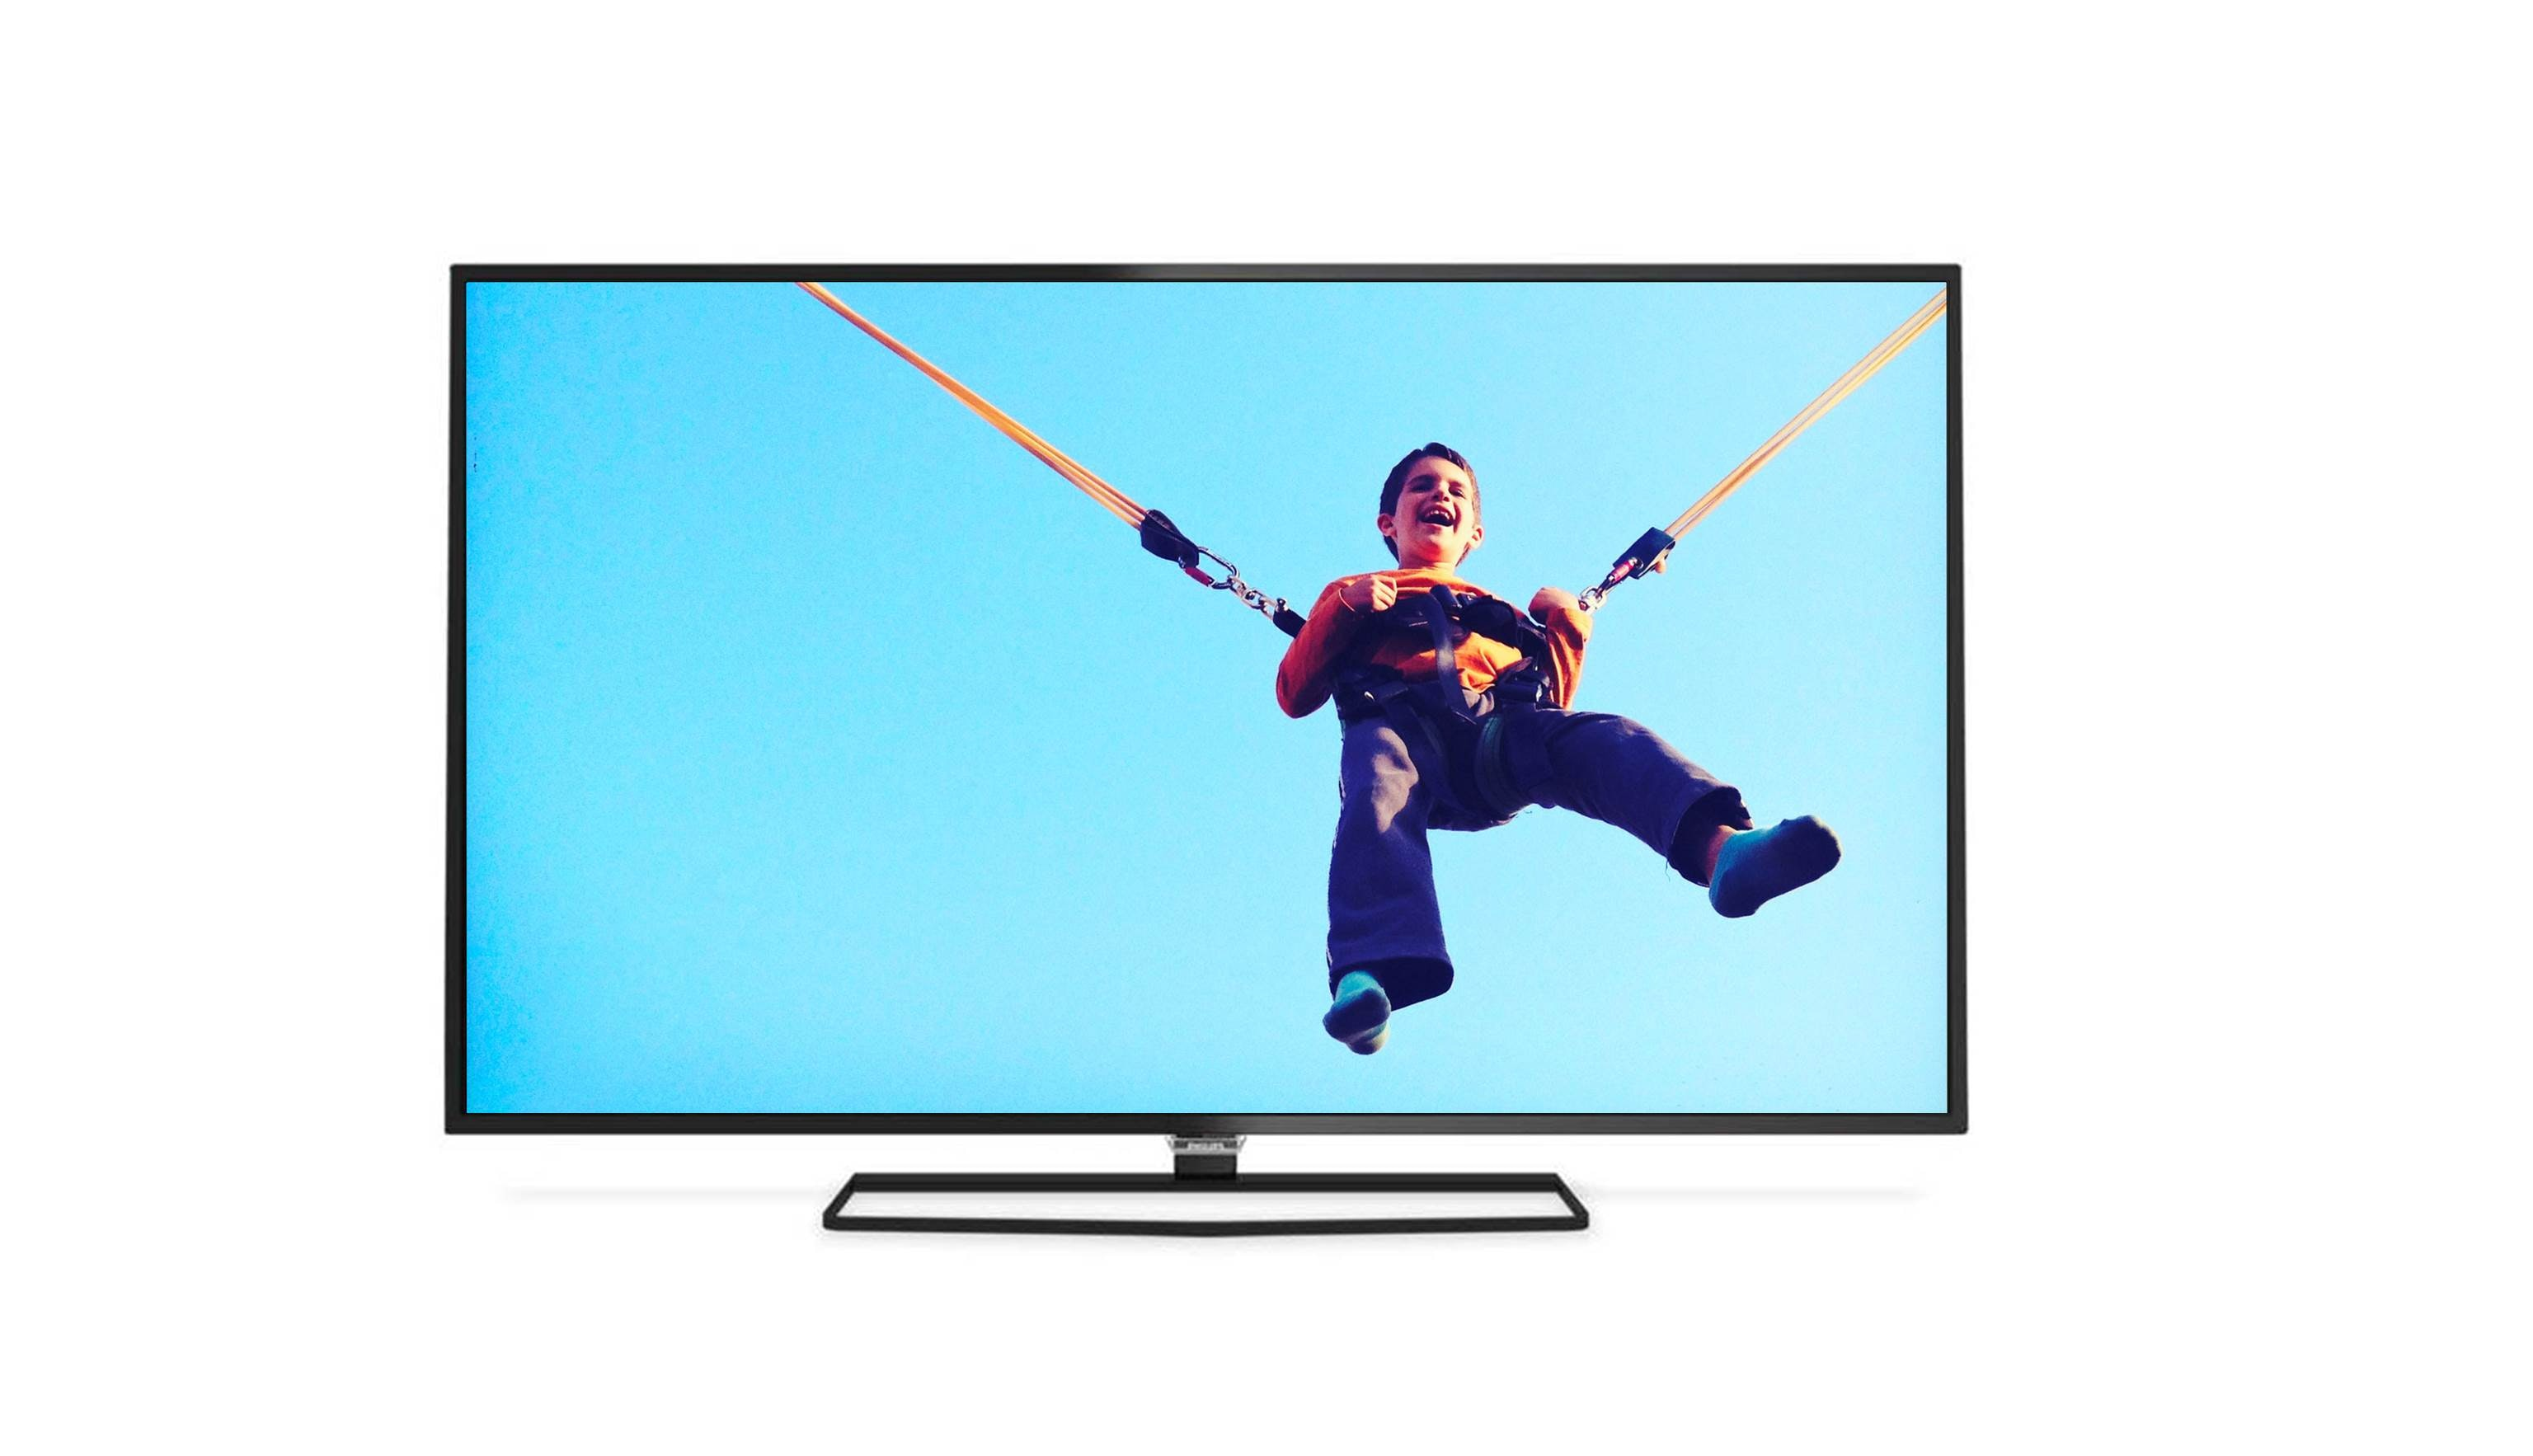 Philips 55PFT6200 Full HD Smart LED TV (1)